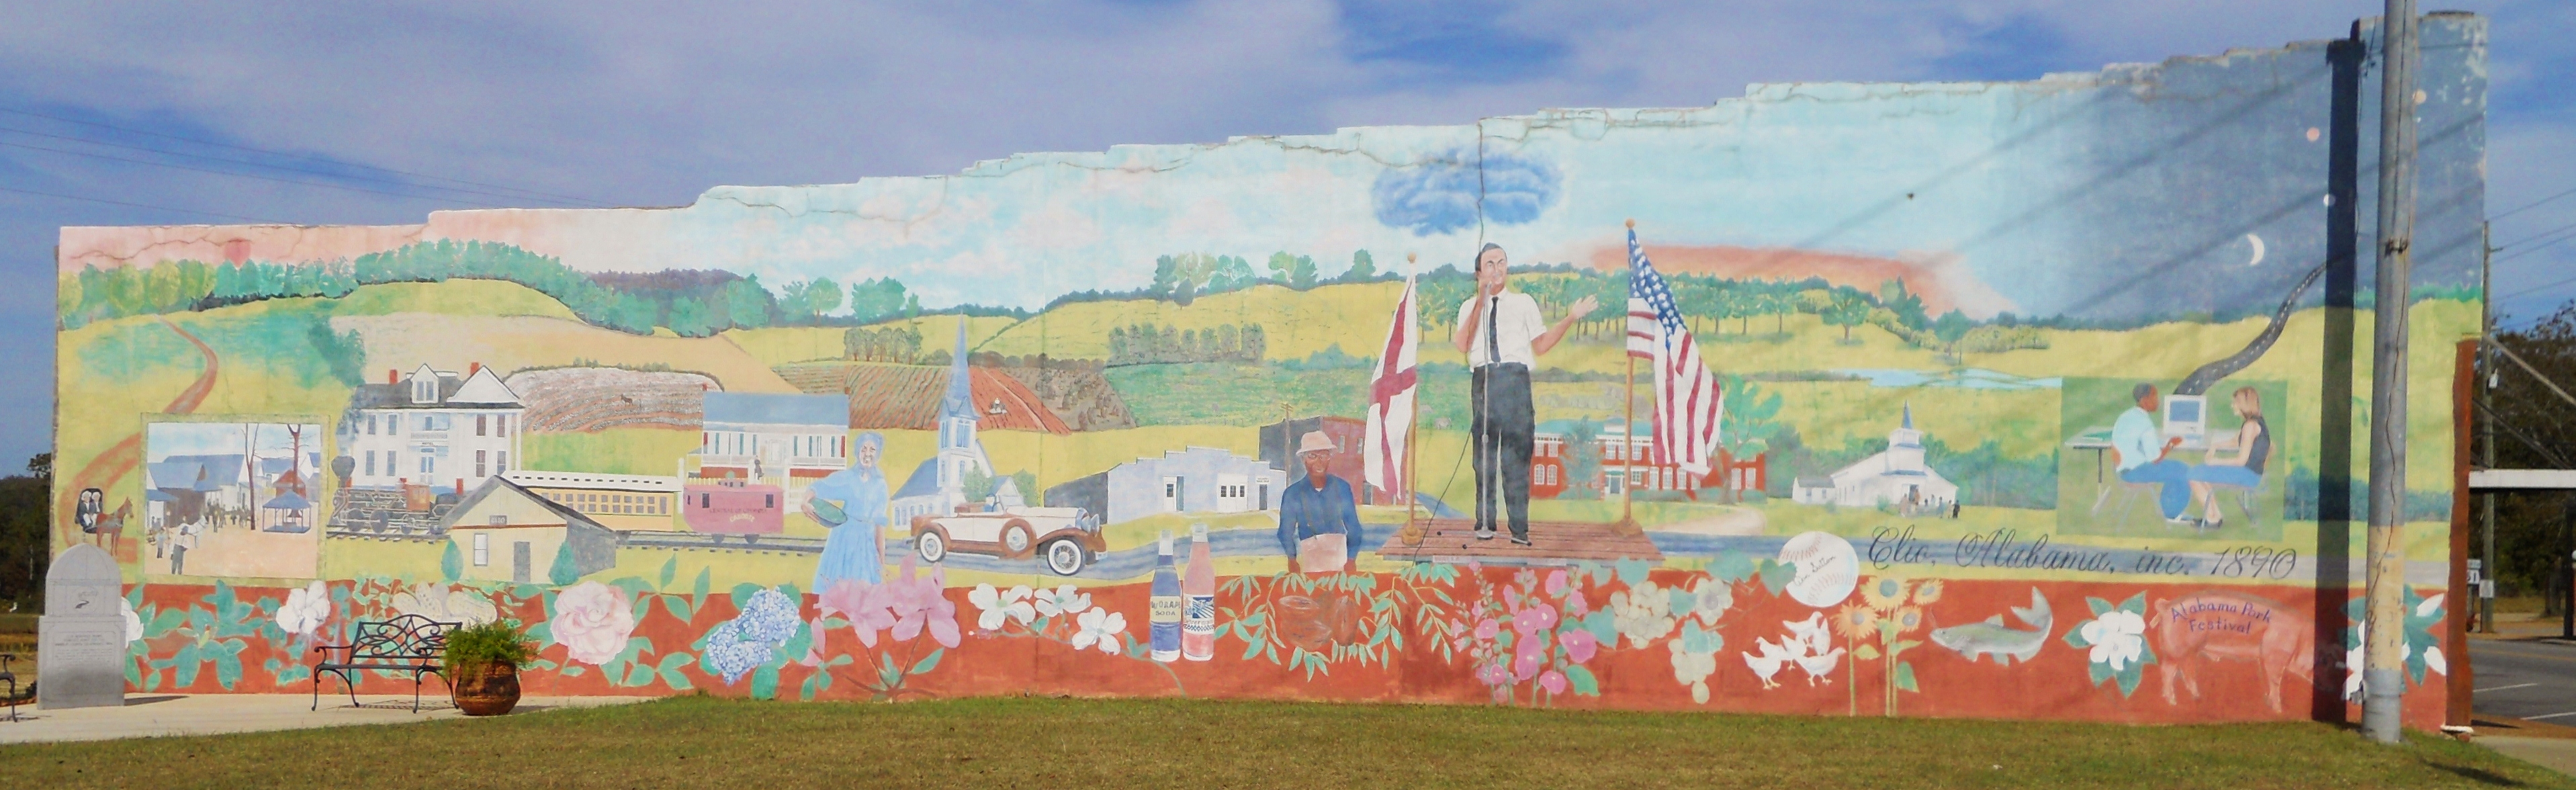 A short drive in Southeast Alabama takes you through several historic sites